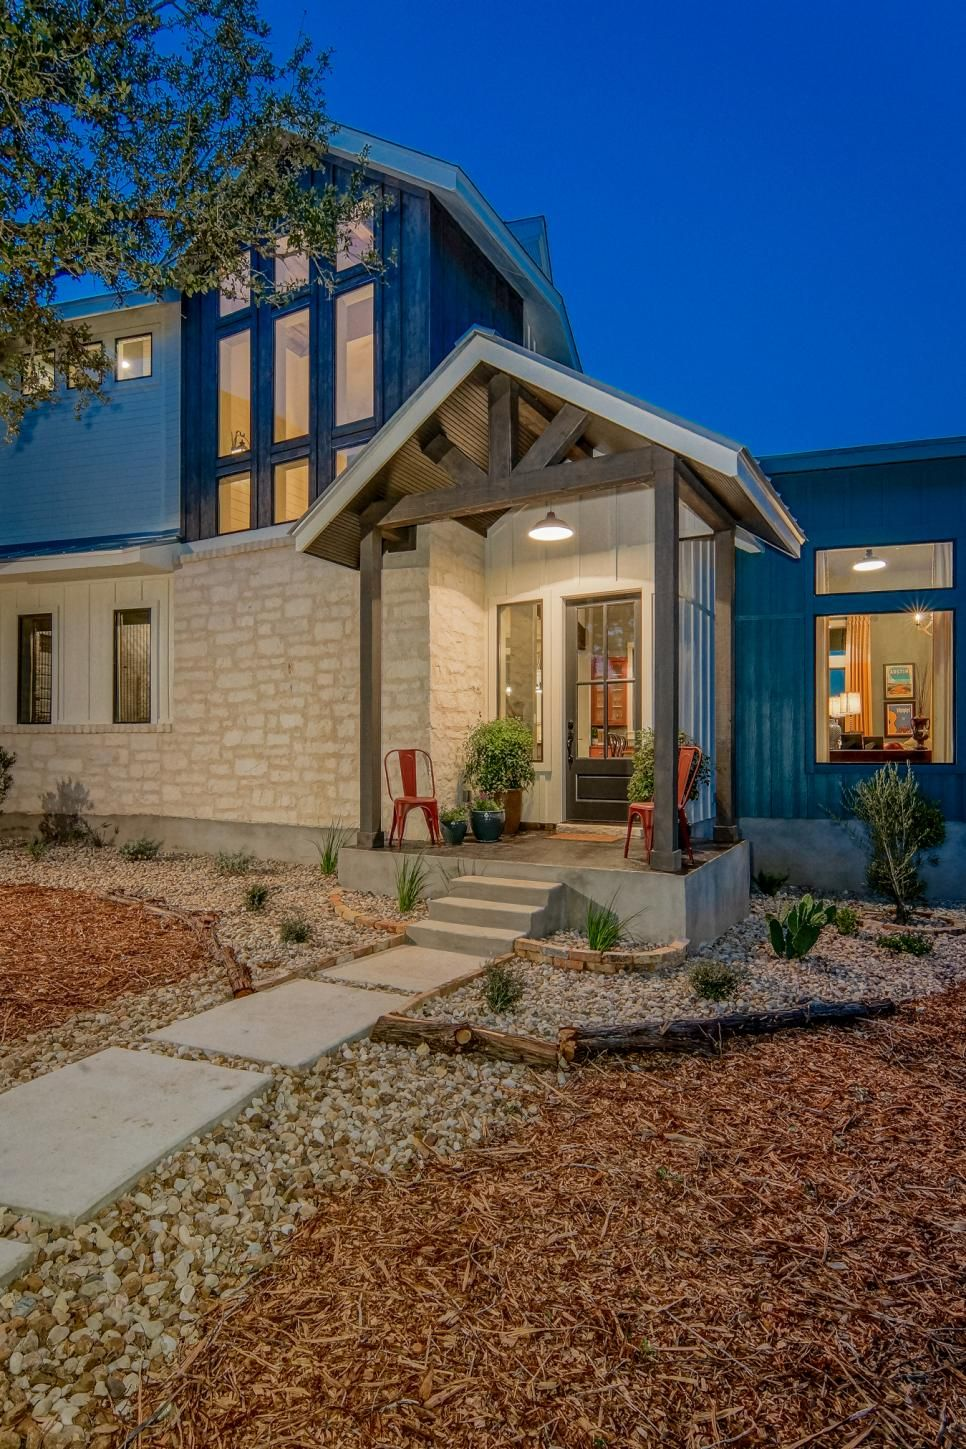 Blue Contemporary Country Farmhouse With Reclaimed Wood